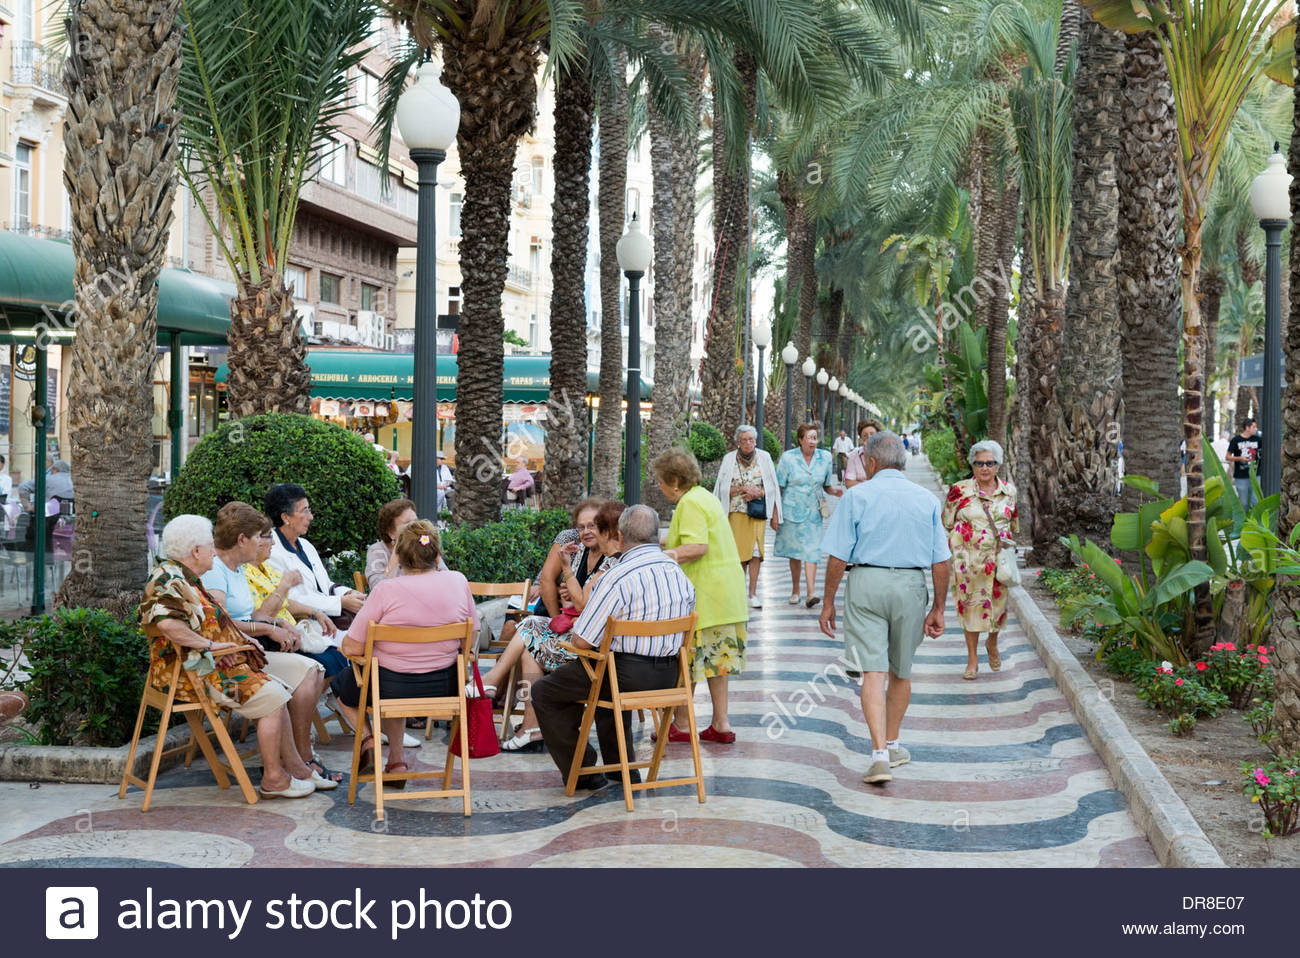 Elderly people sitting on wooden chairs on the Paseo Explanada de Espana, Alicante, Costa Blanca, Spain - Stock Image